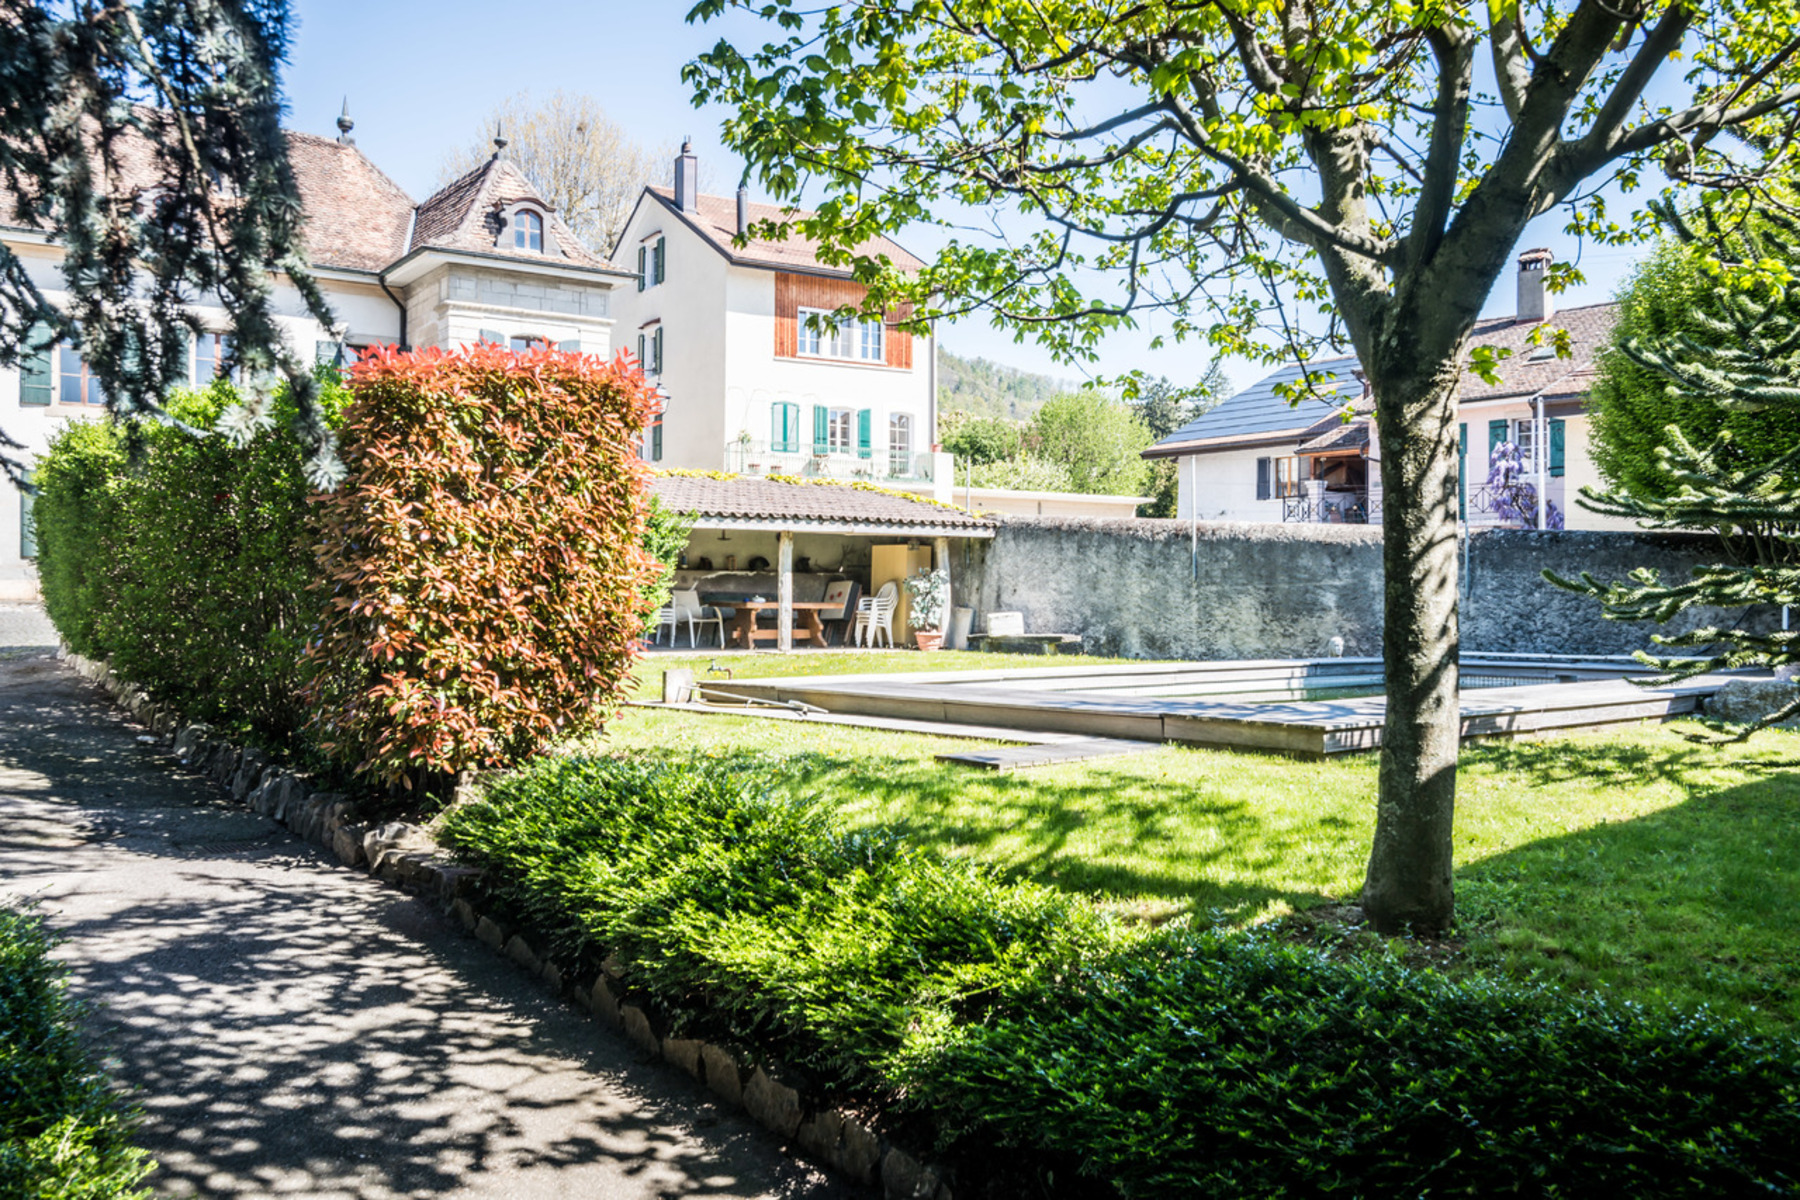 Single Family Home for Sale at 18th century village estate in need of renovation Bursins Other Switzerland, Other Areas In Switzerland, 1183 Switzerland